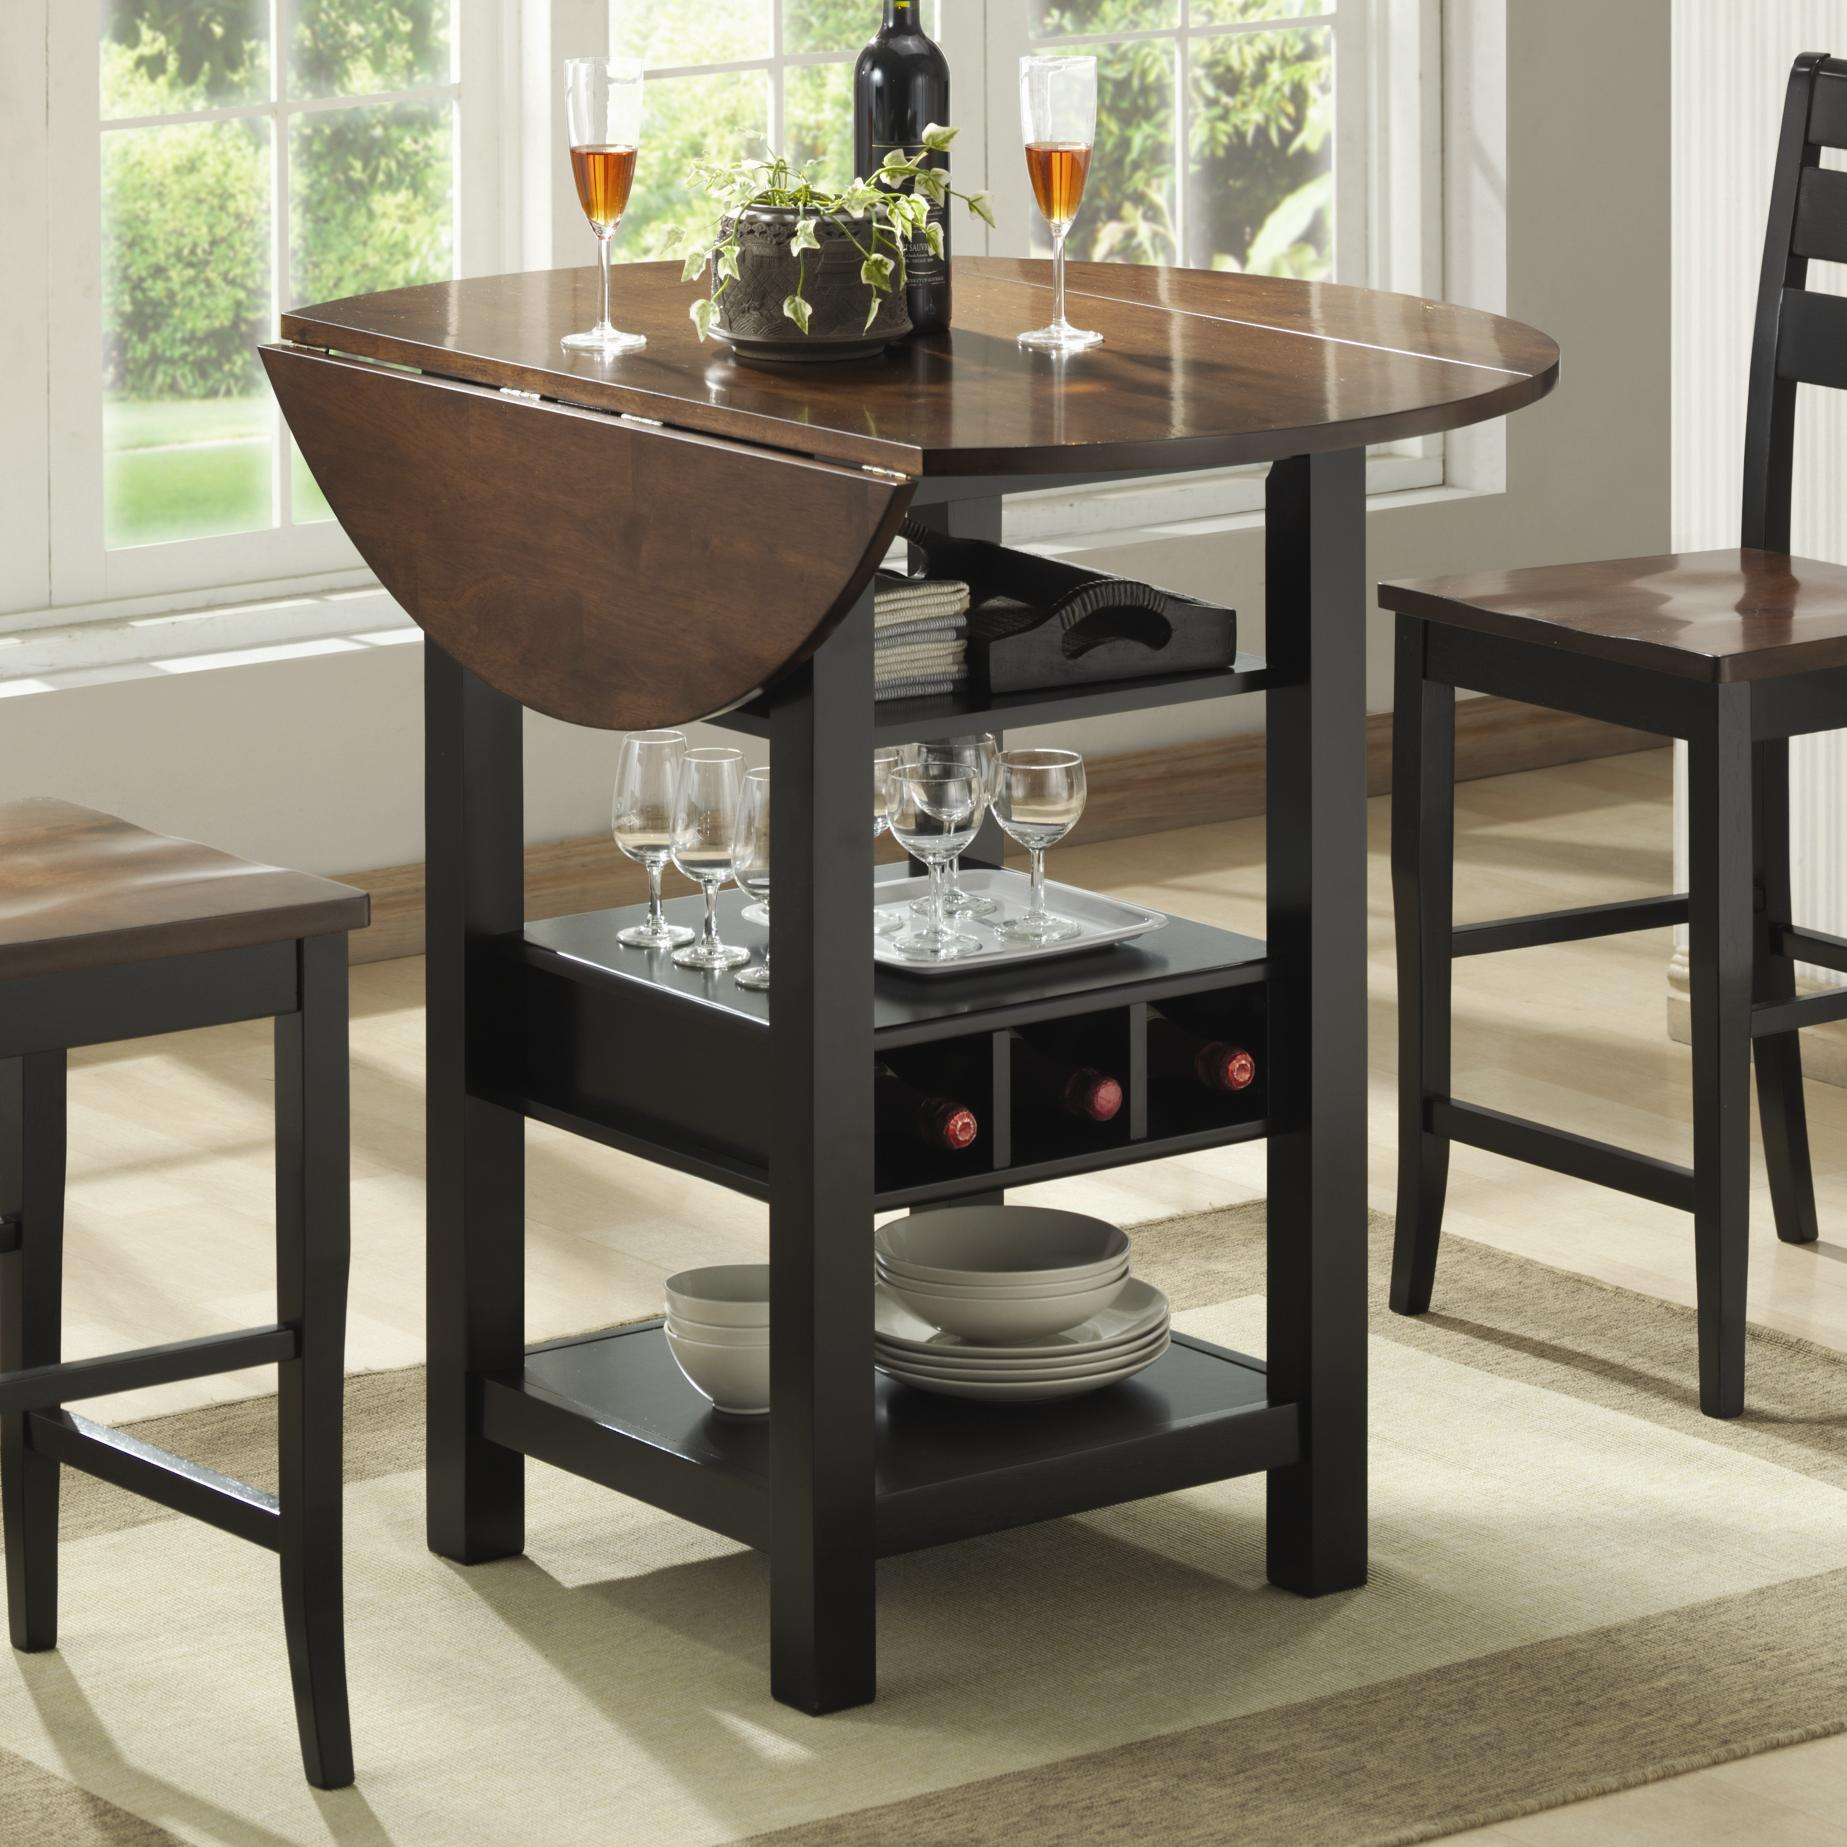 Bar Table With Chairs Ridgewood Drop Leaf Counter Table With Wine Rack By Bernards At Wayside Furniture